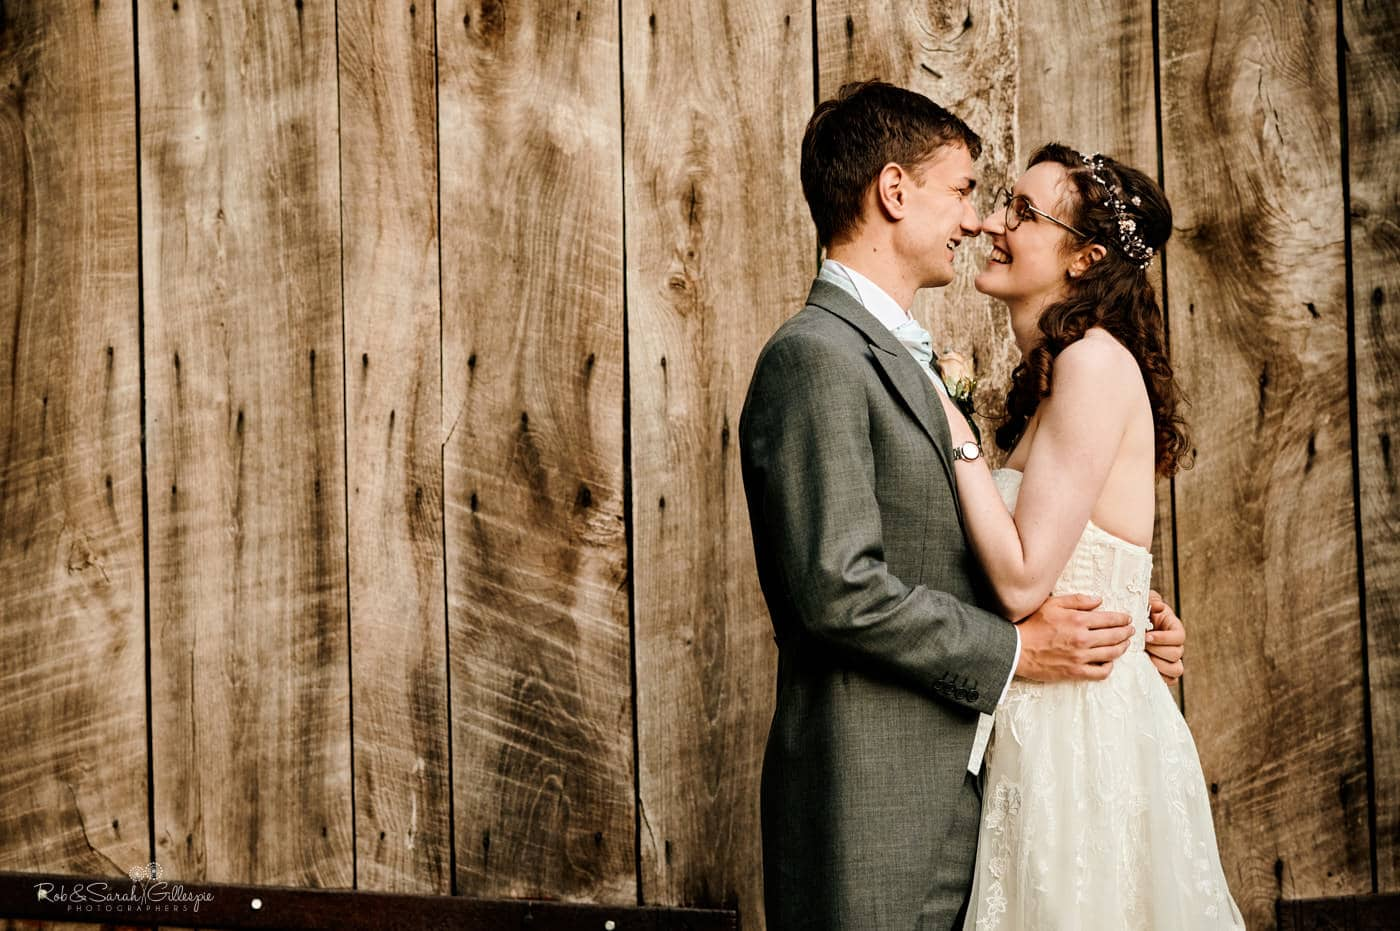 Relaxed bride and groom with old barn doors